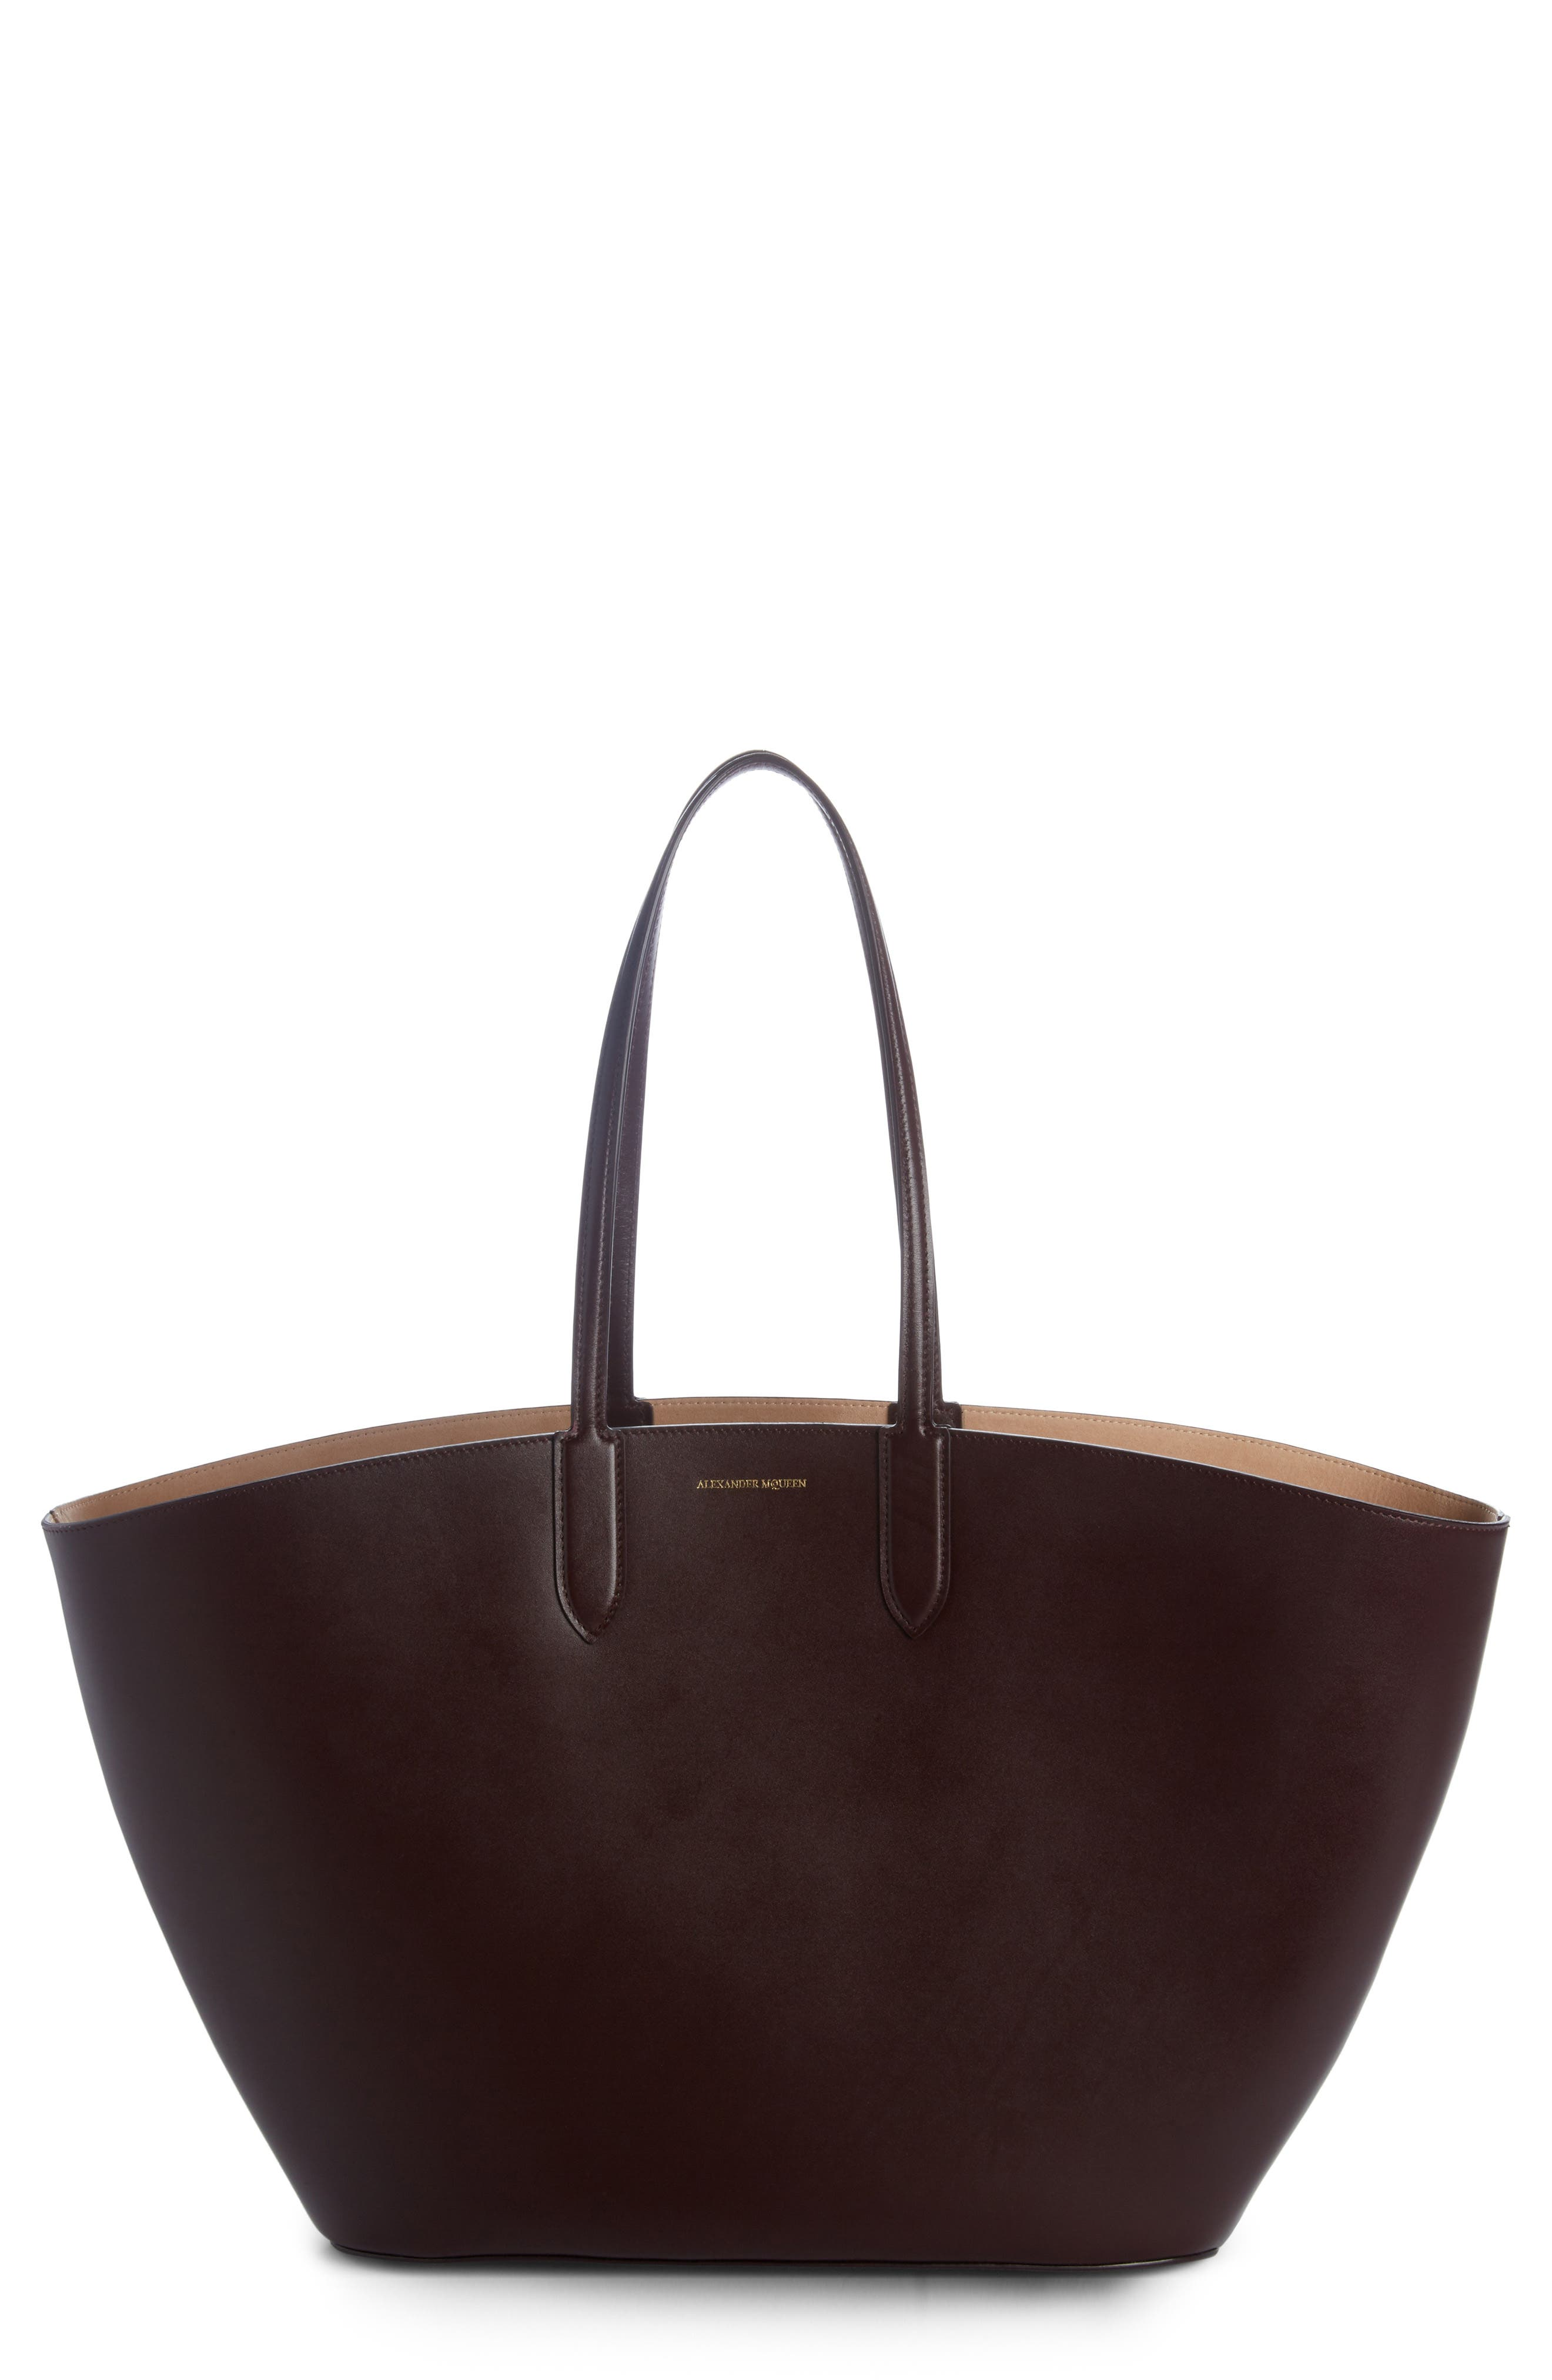 East/West Calfskin Leather Tote,                         Main,                         color, Black